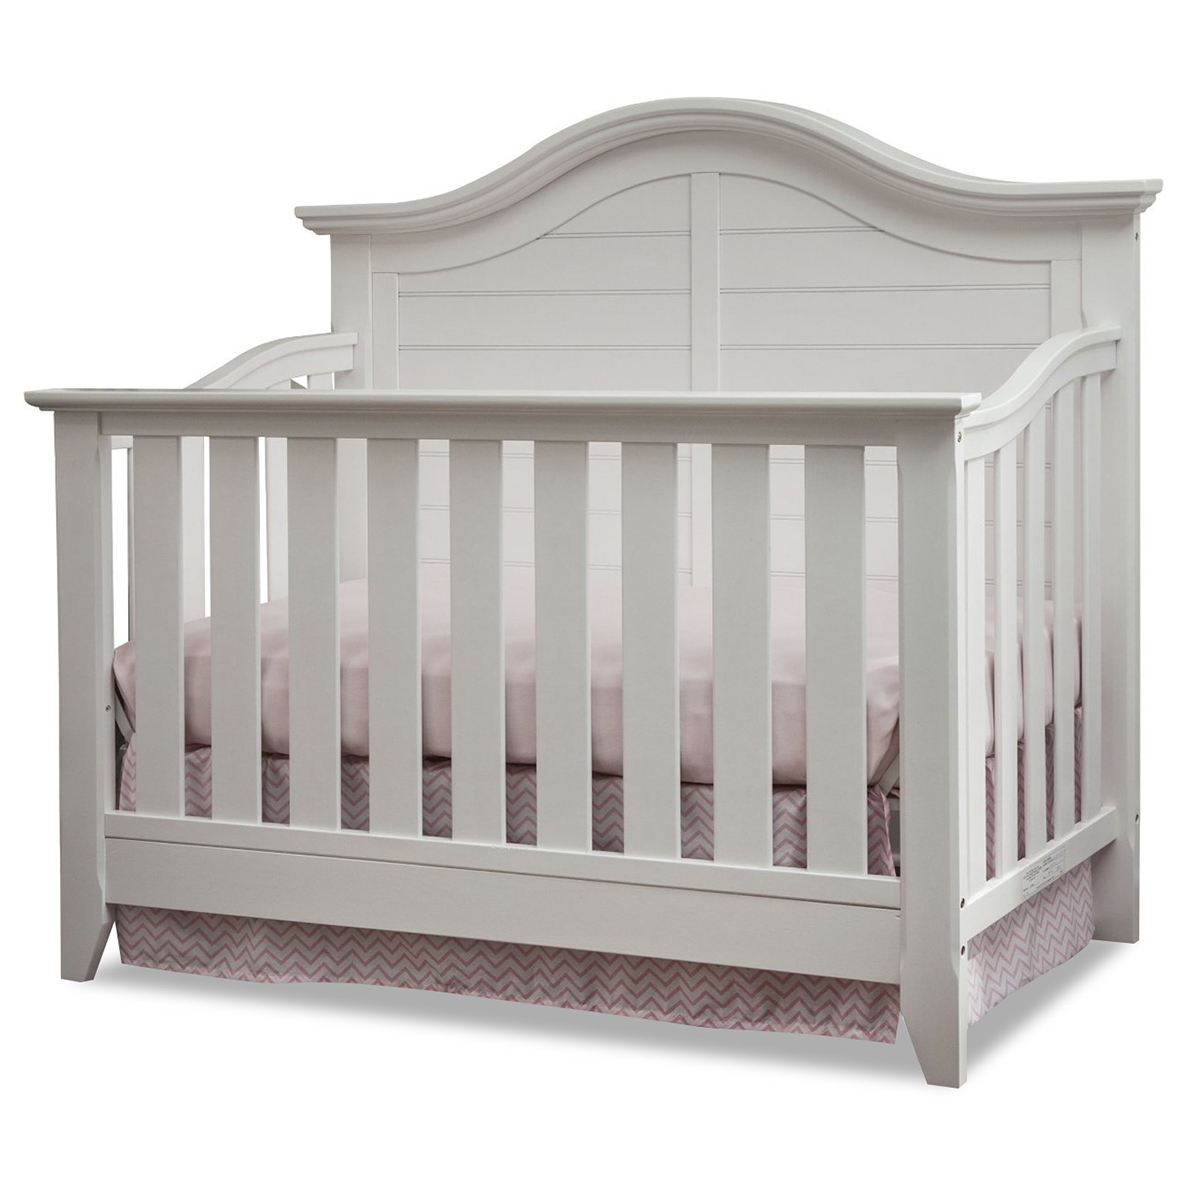 Antique Baby Cribs Baby Cribs Ship Free At Simply Baby Furniture